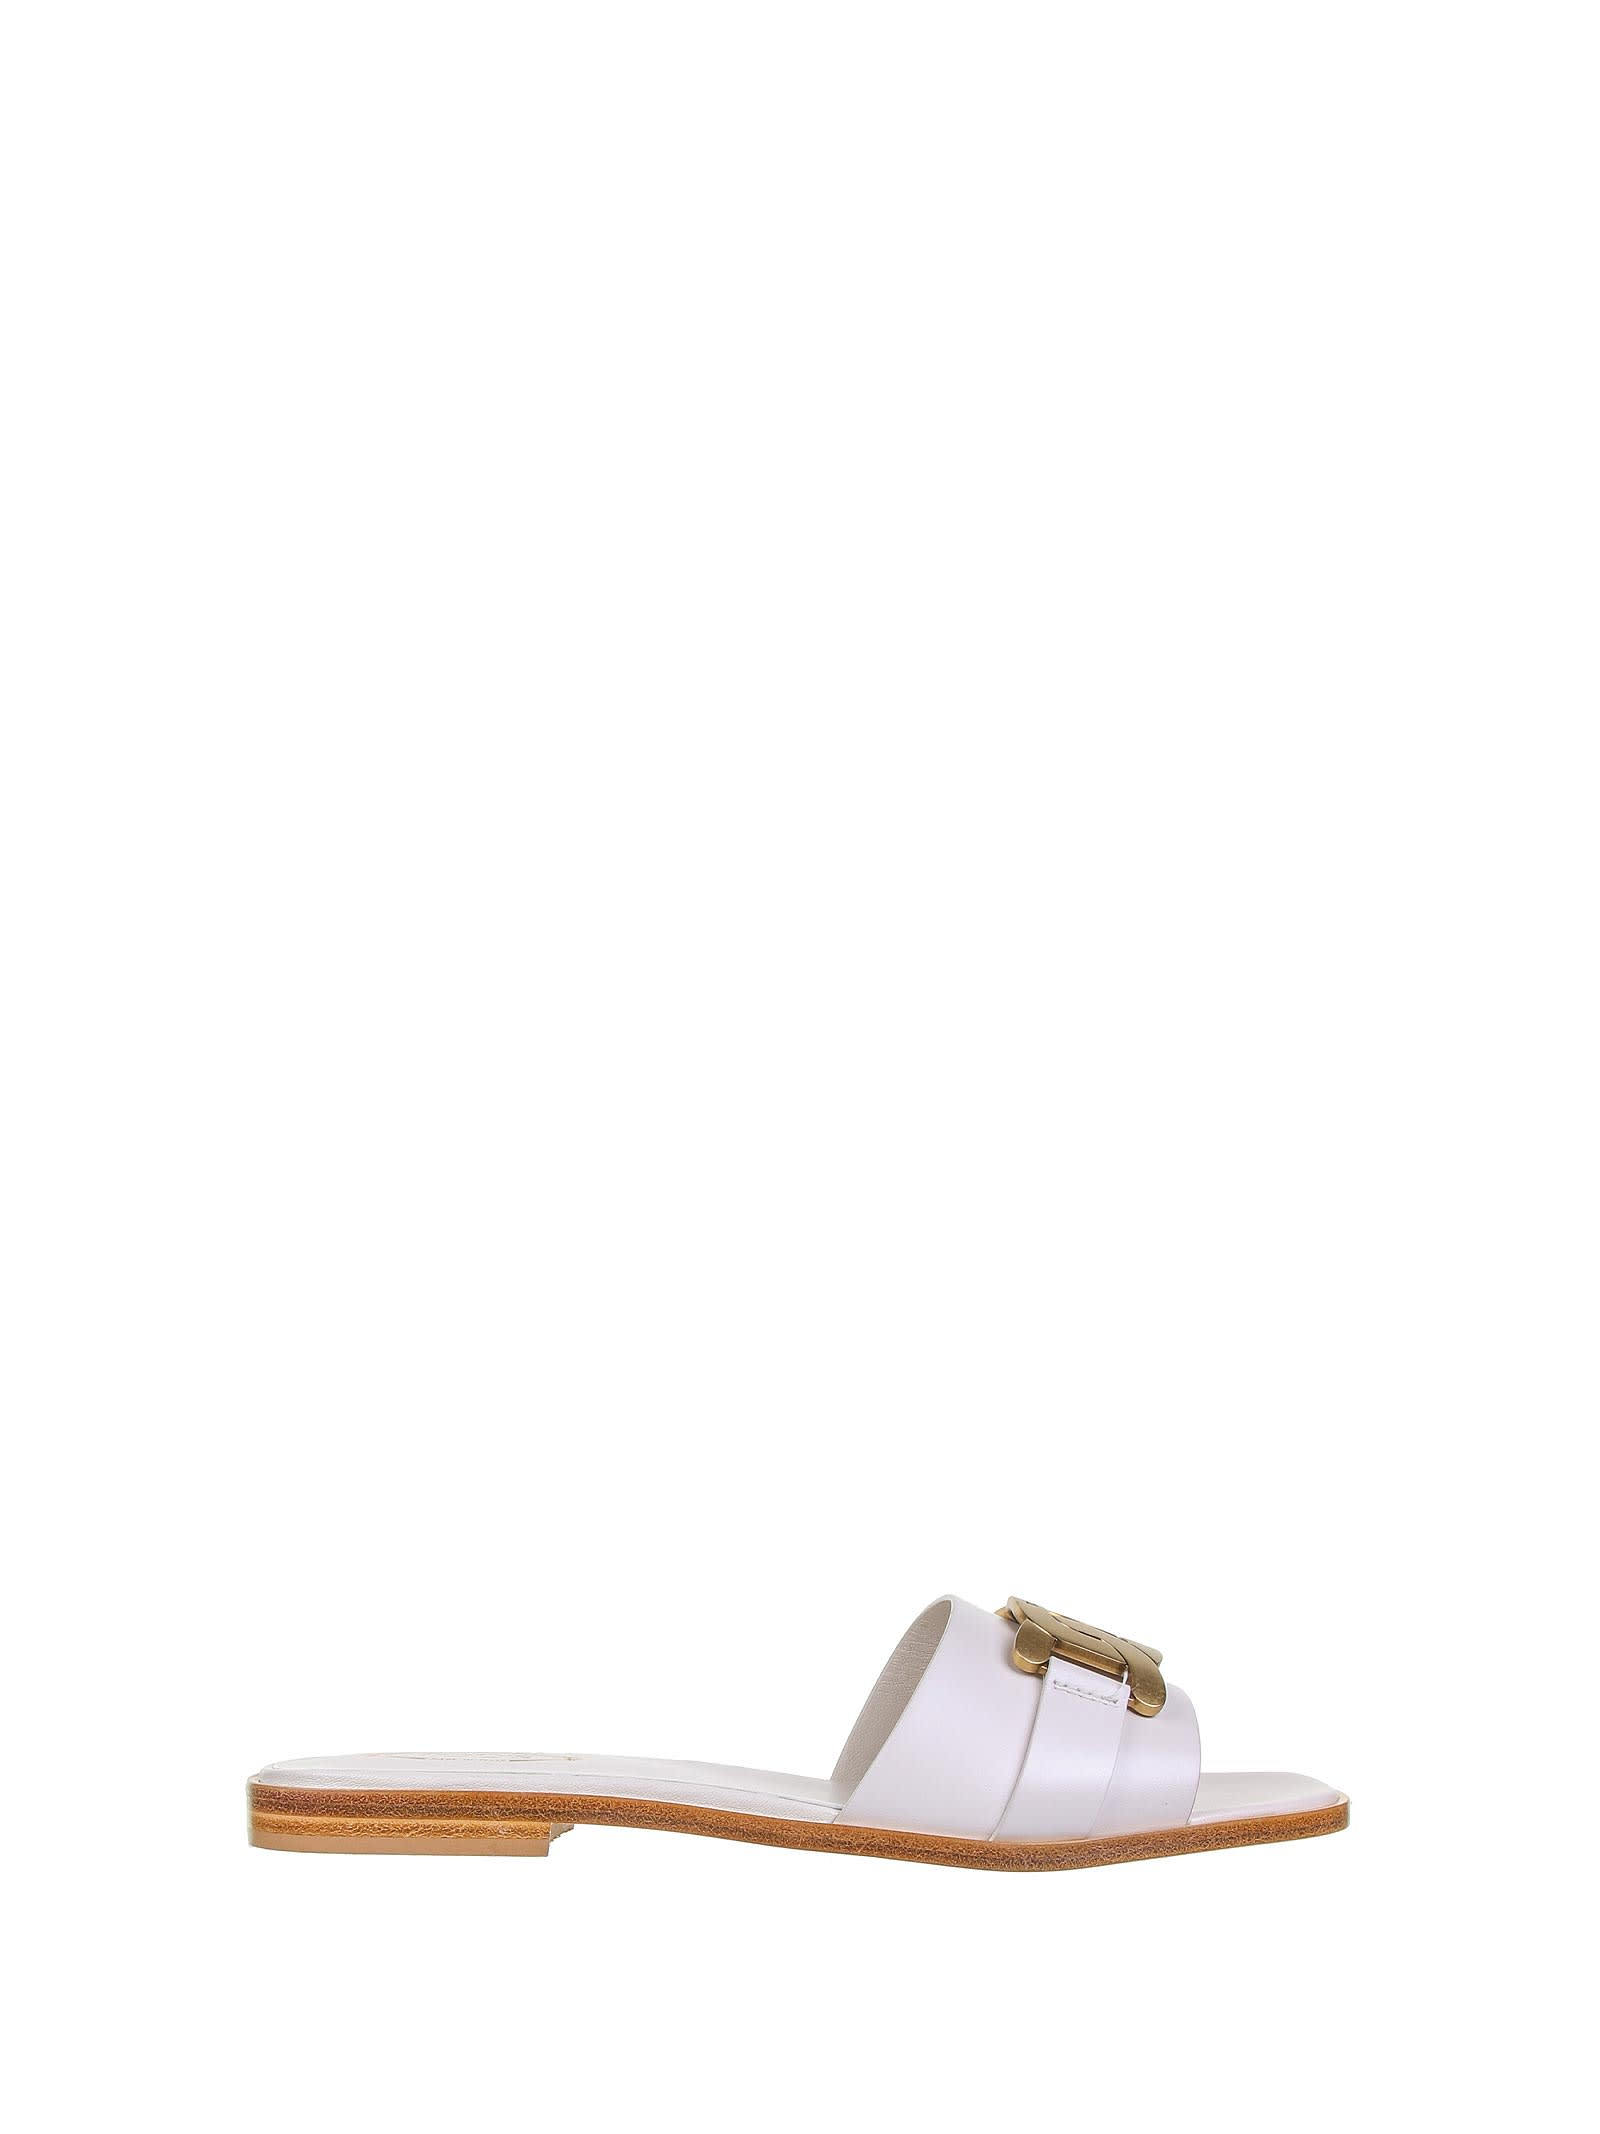 Tods Tods White Sandals